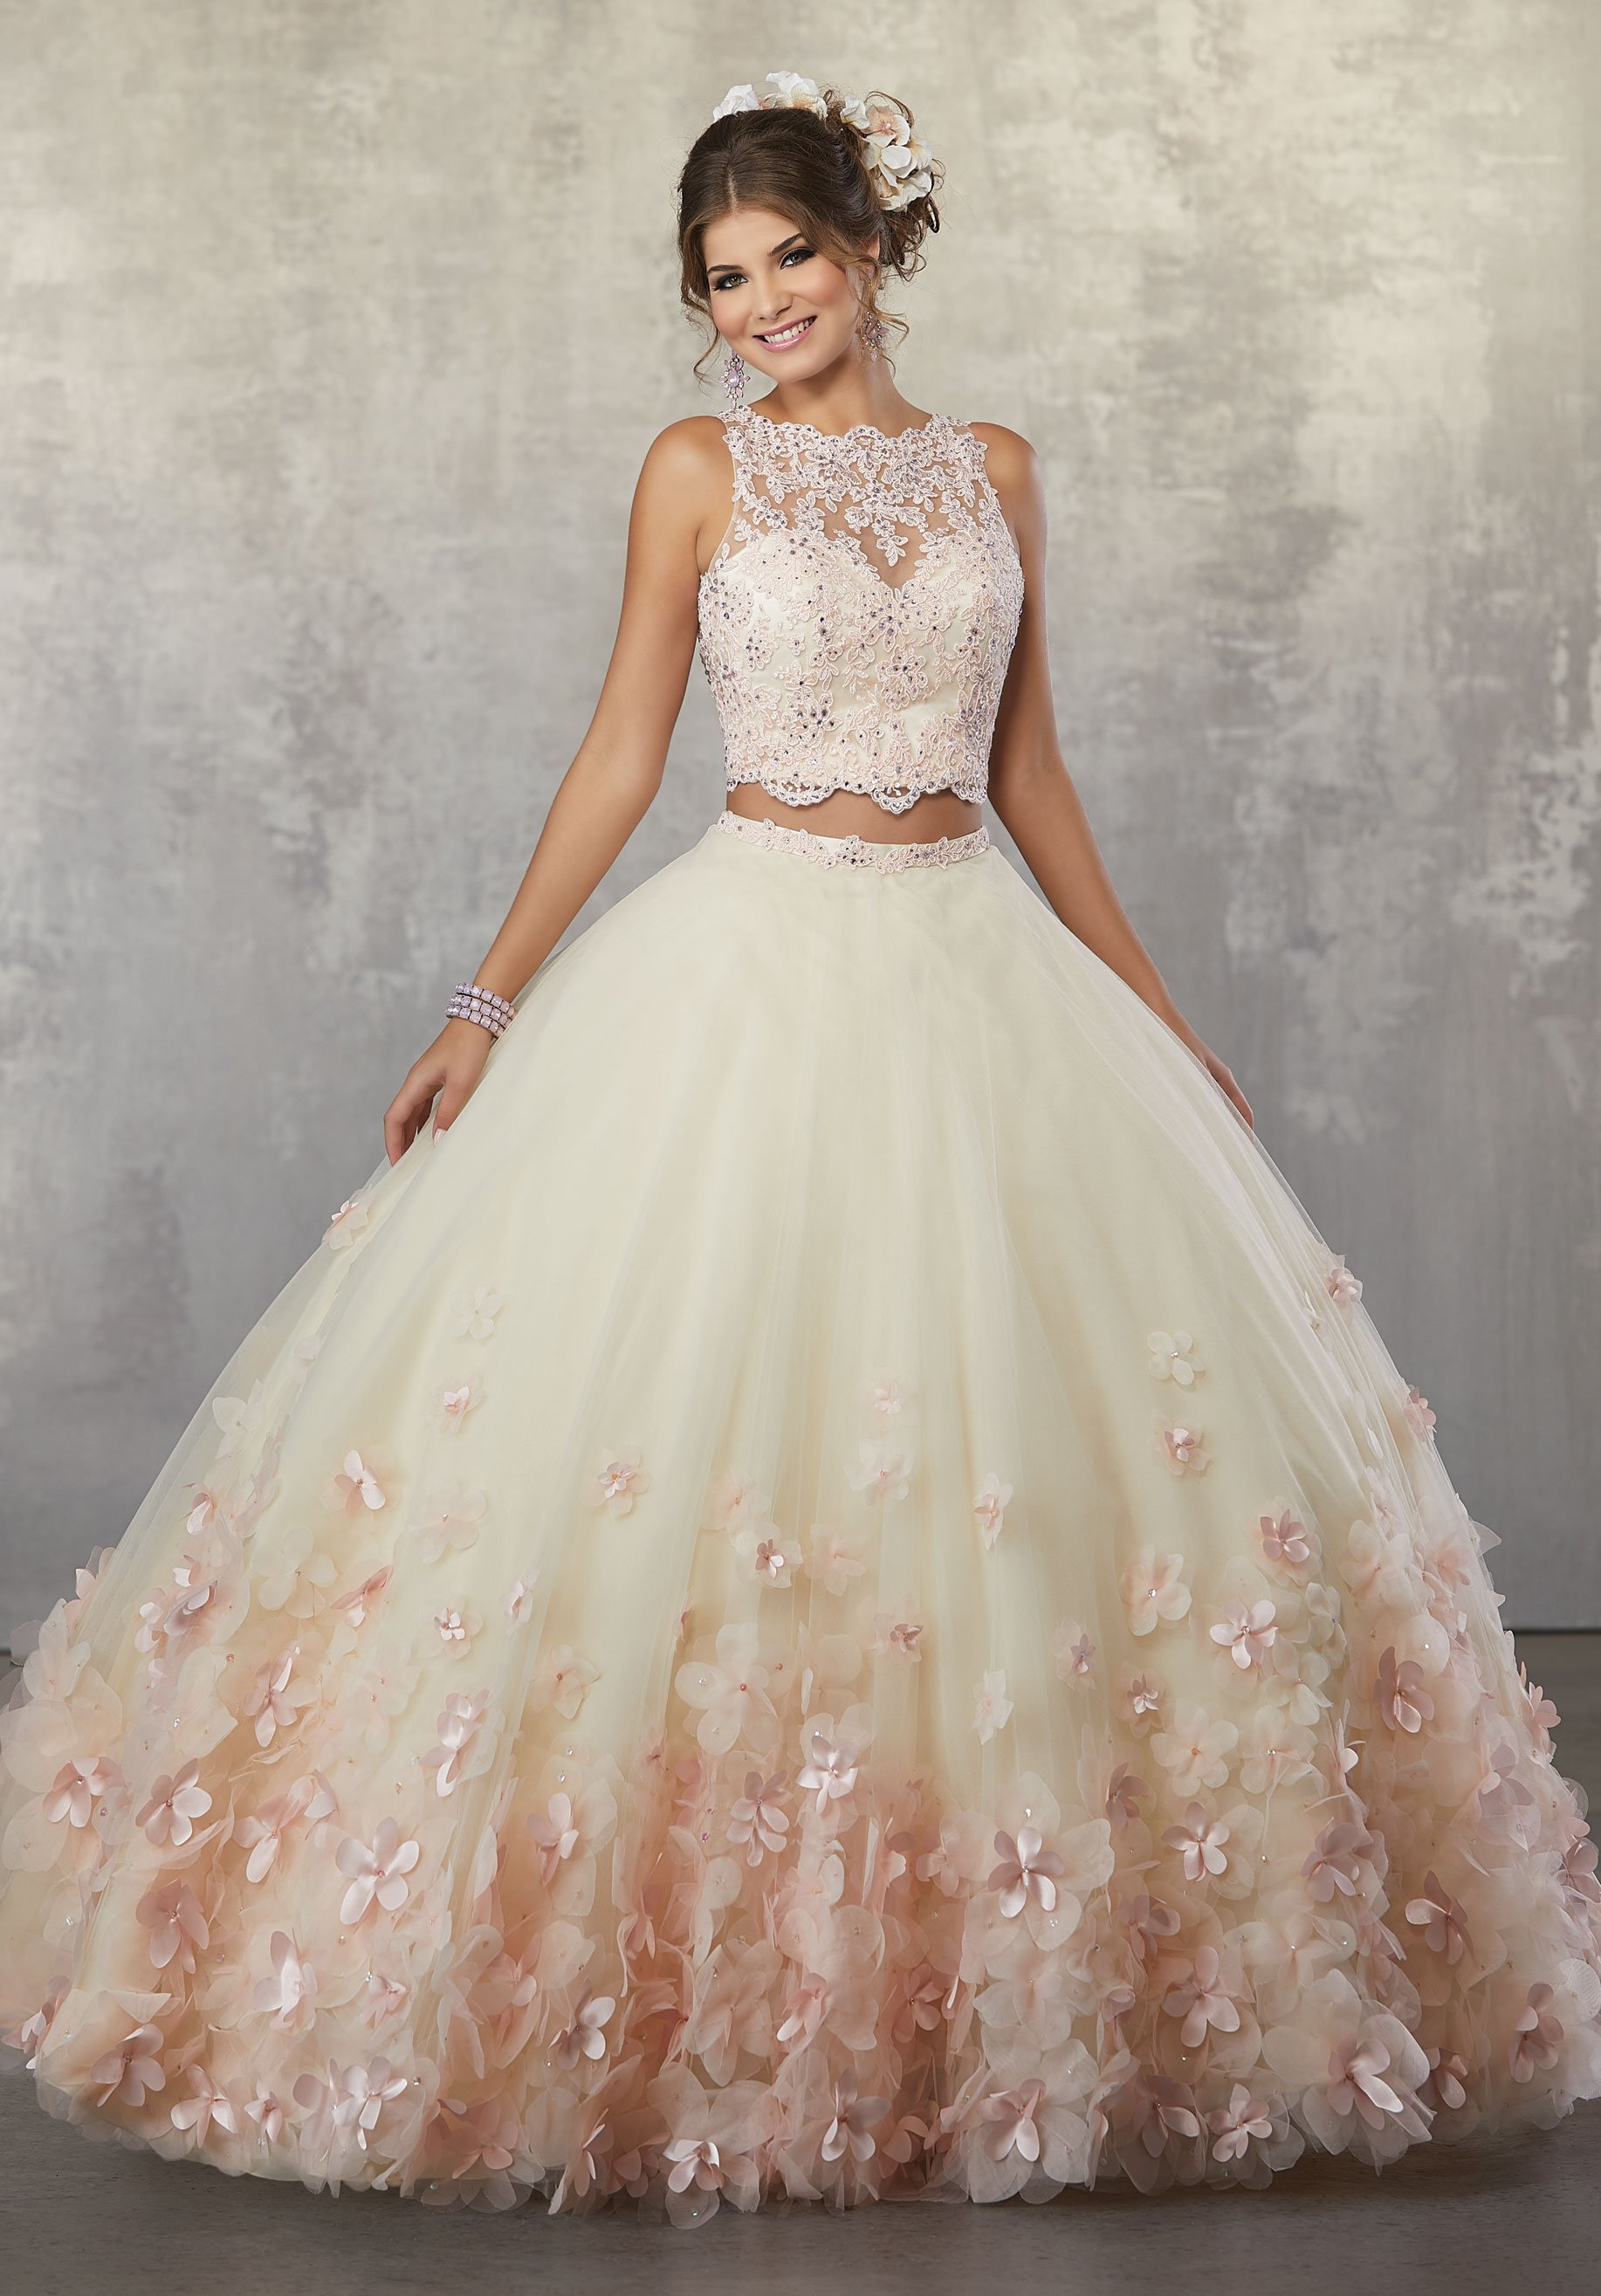 420616118a8 Floral Two-Piece Quinceanera Dress by Mori Lee Vizcaya 89175 ...